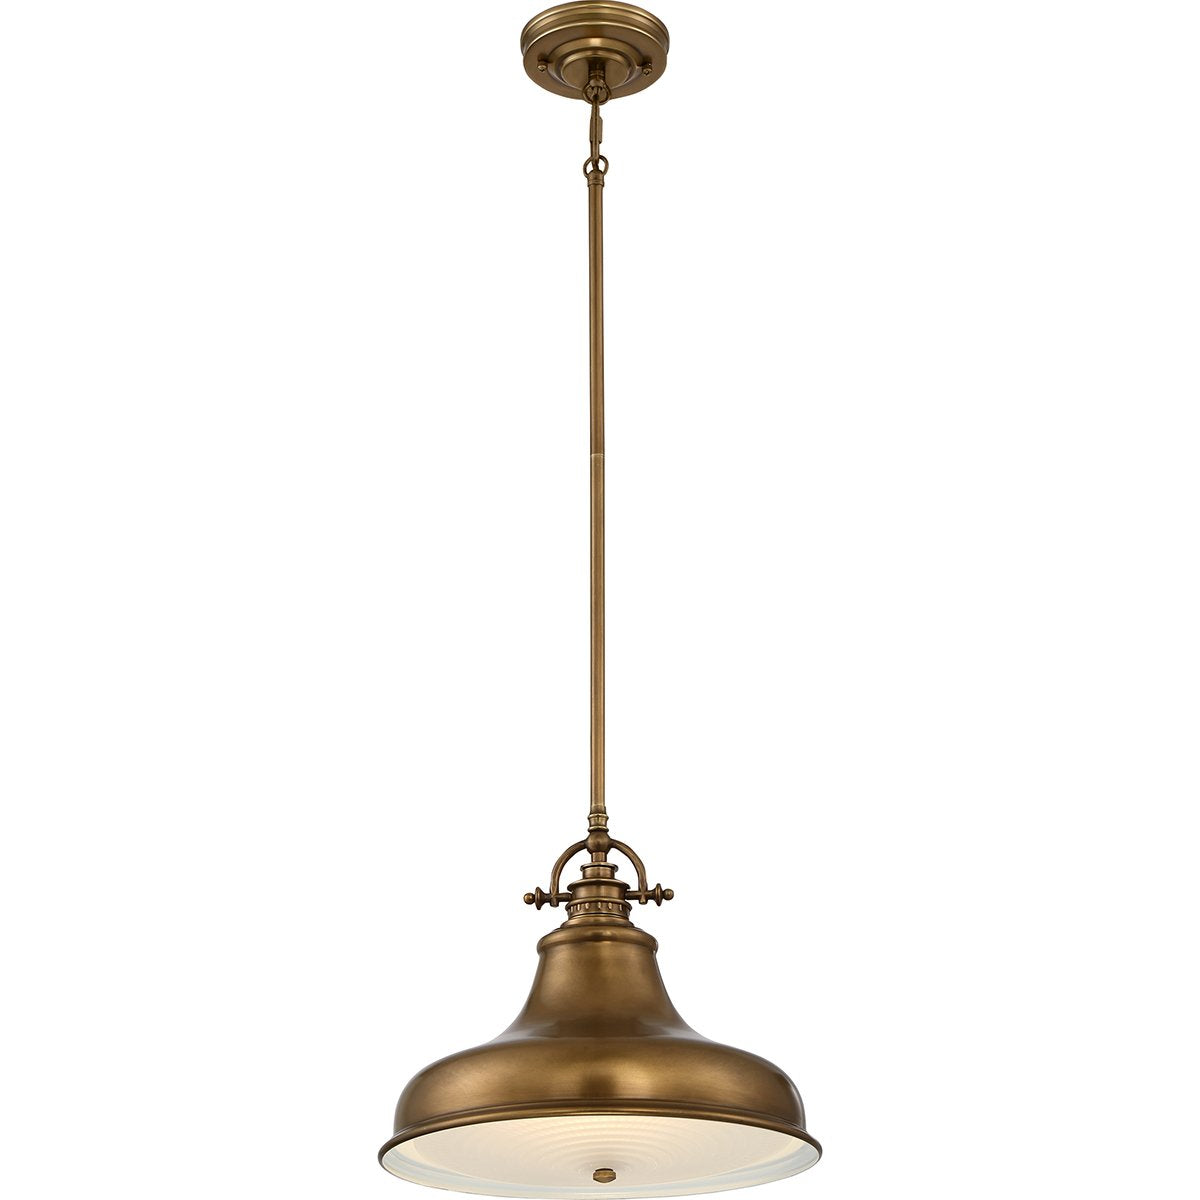 Single Pendant Weathered Brass Light